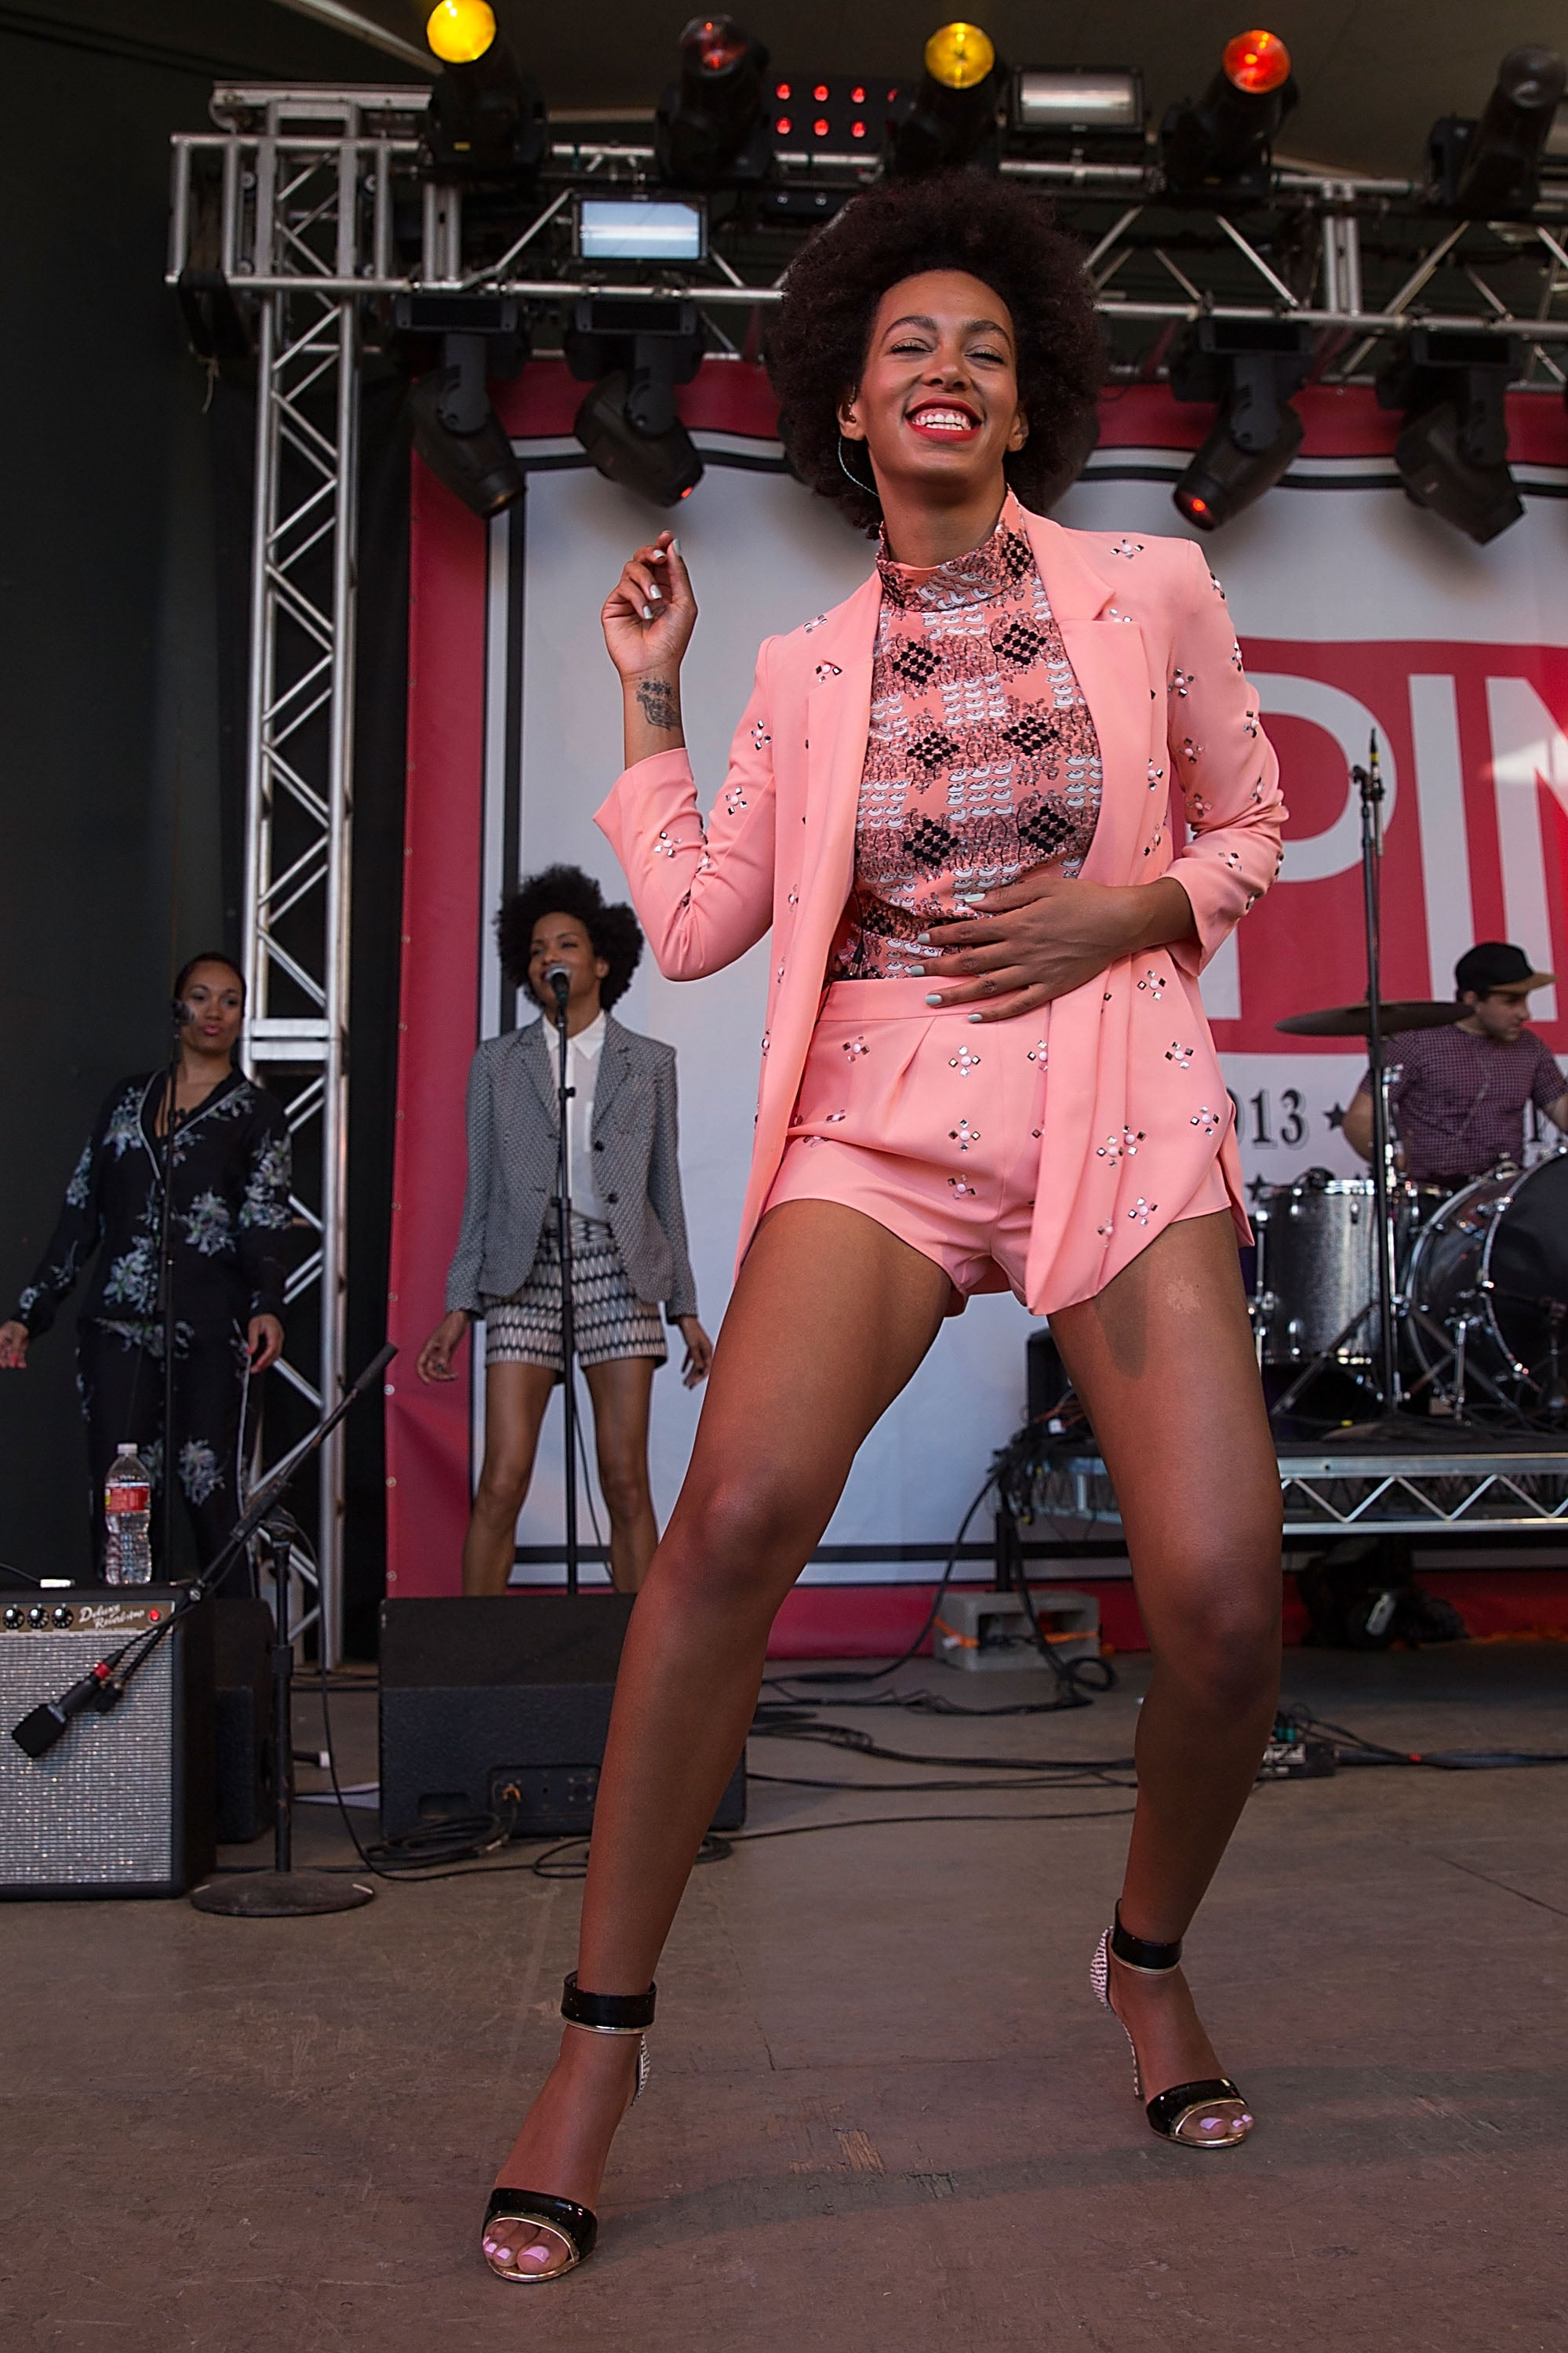 Solange was Spring-perfect in a pastel-hued suit and ankle-strap heels on stage at SPIN.